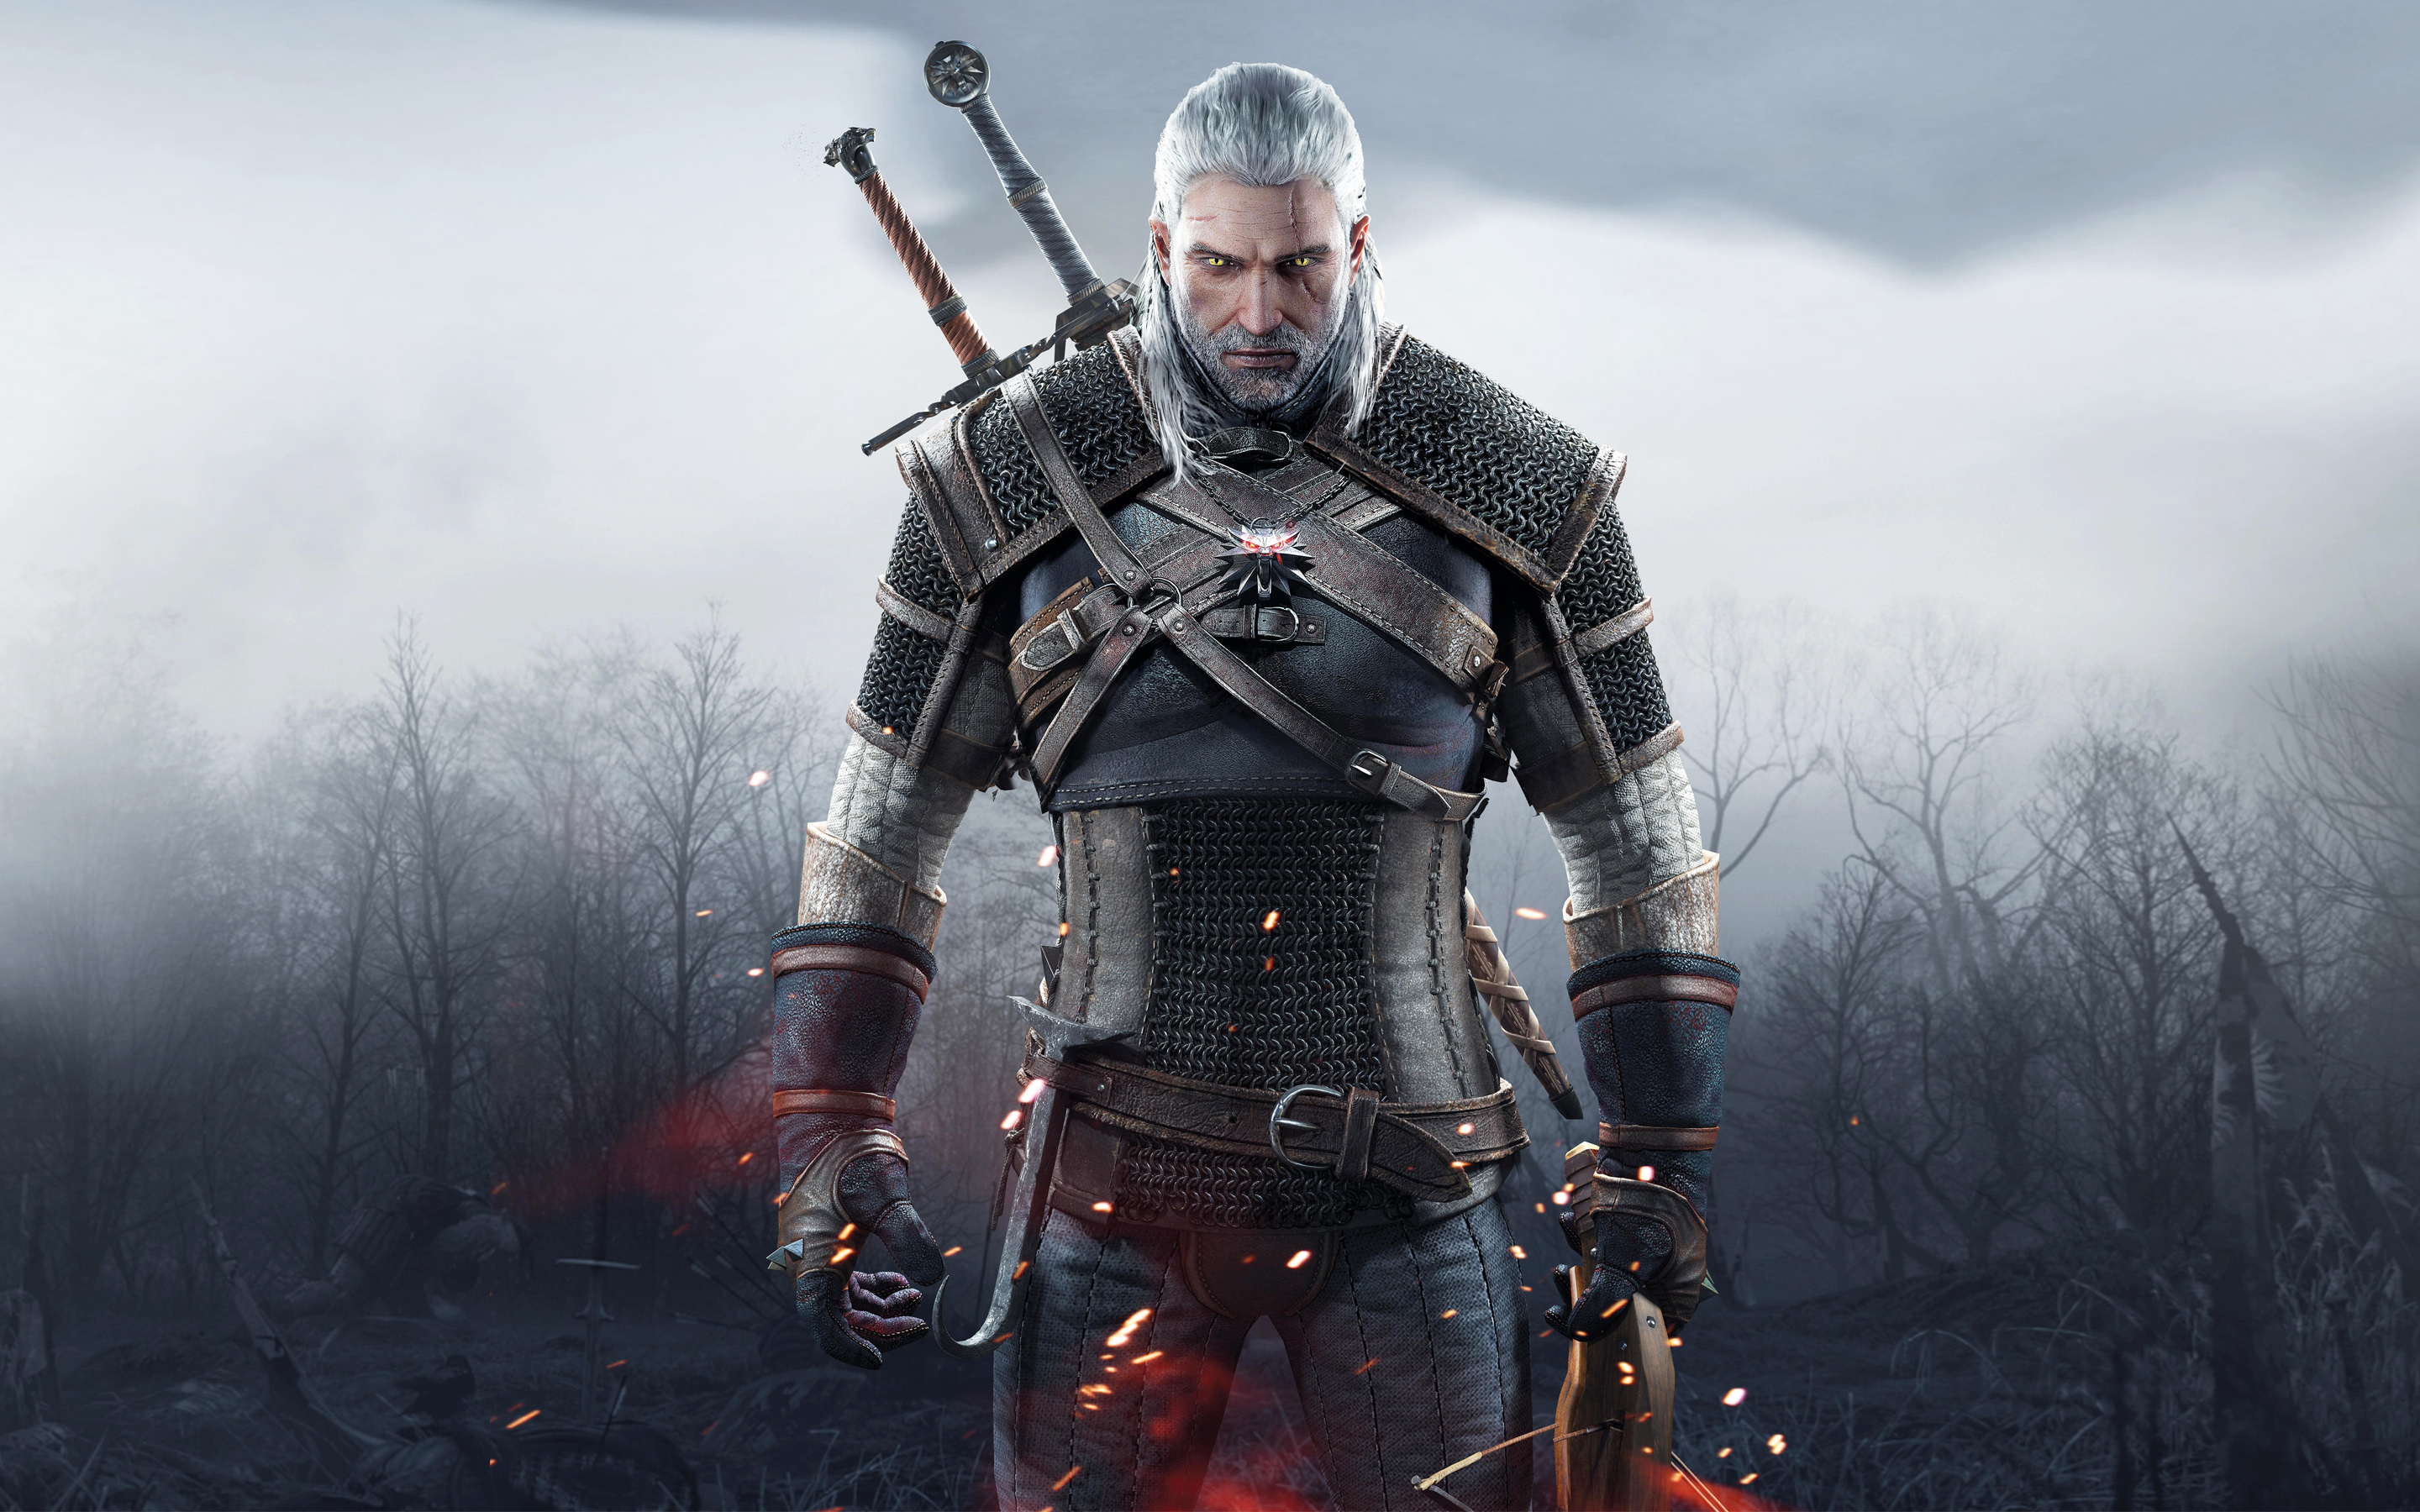 Geralt looking like a bad ass